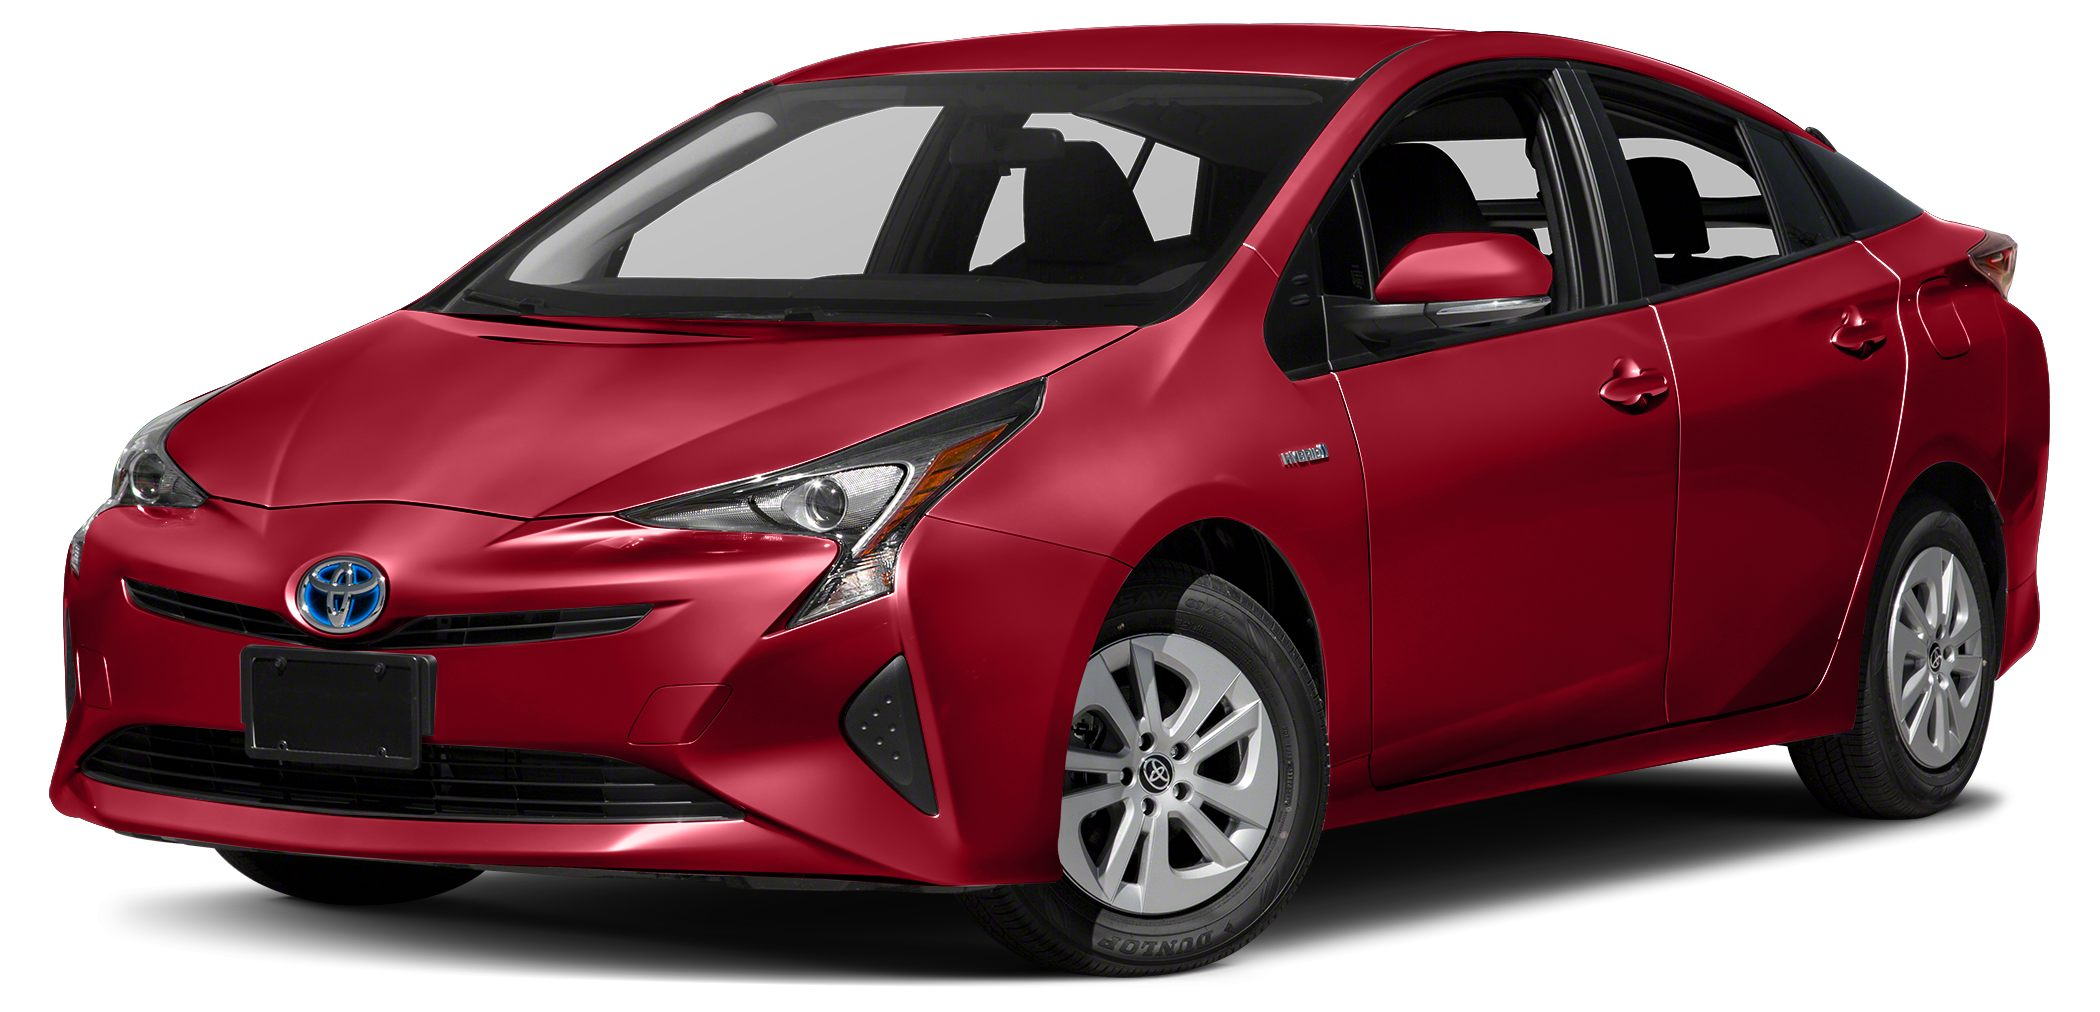 2018 Toyota Prius Four This 2018 Toyota Prius 5dr Four features a 18L 4 Cylinder Hybrid engine I